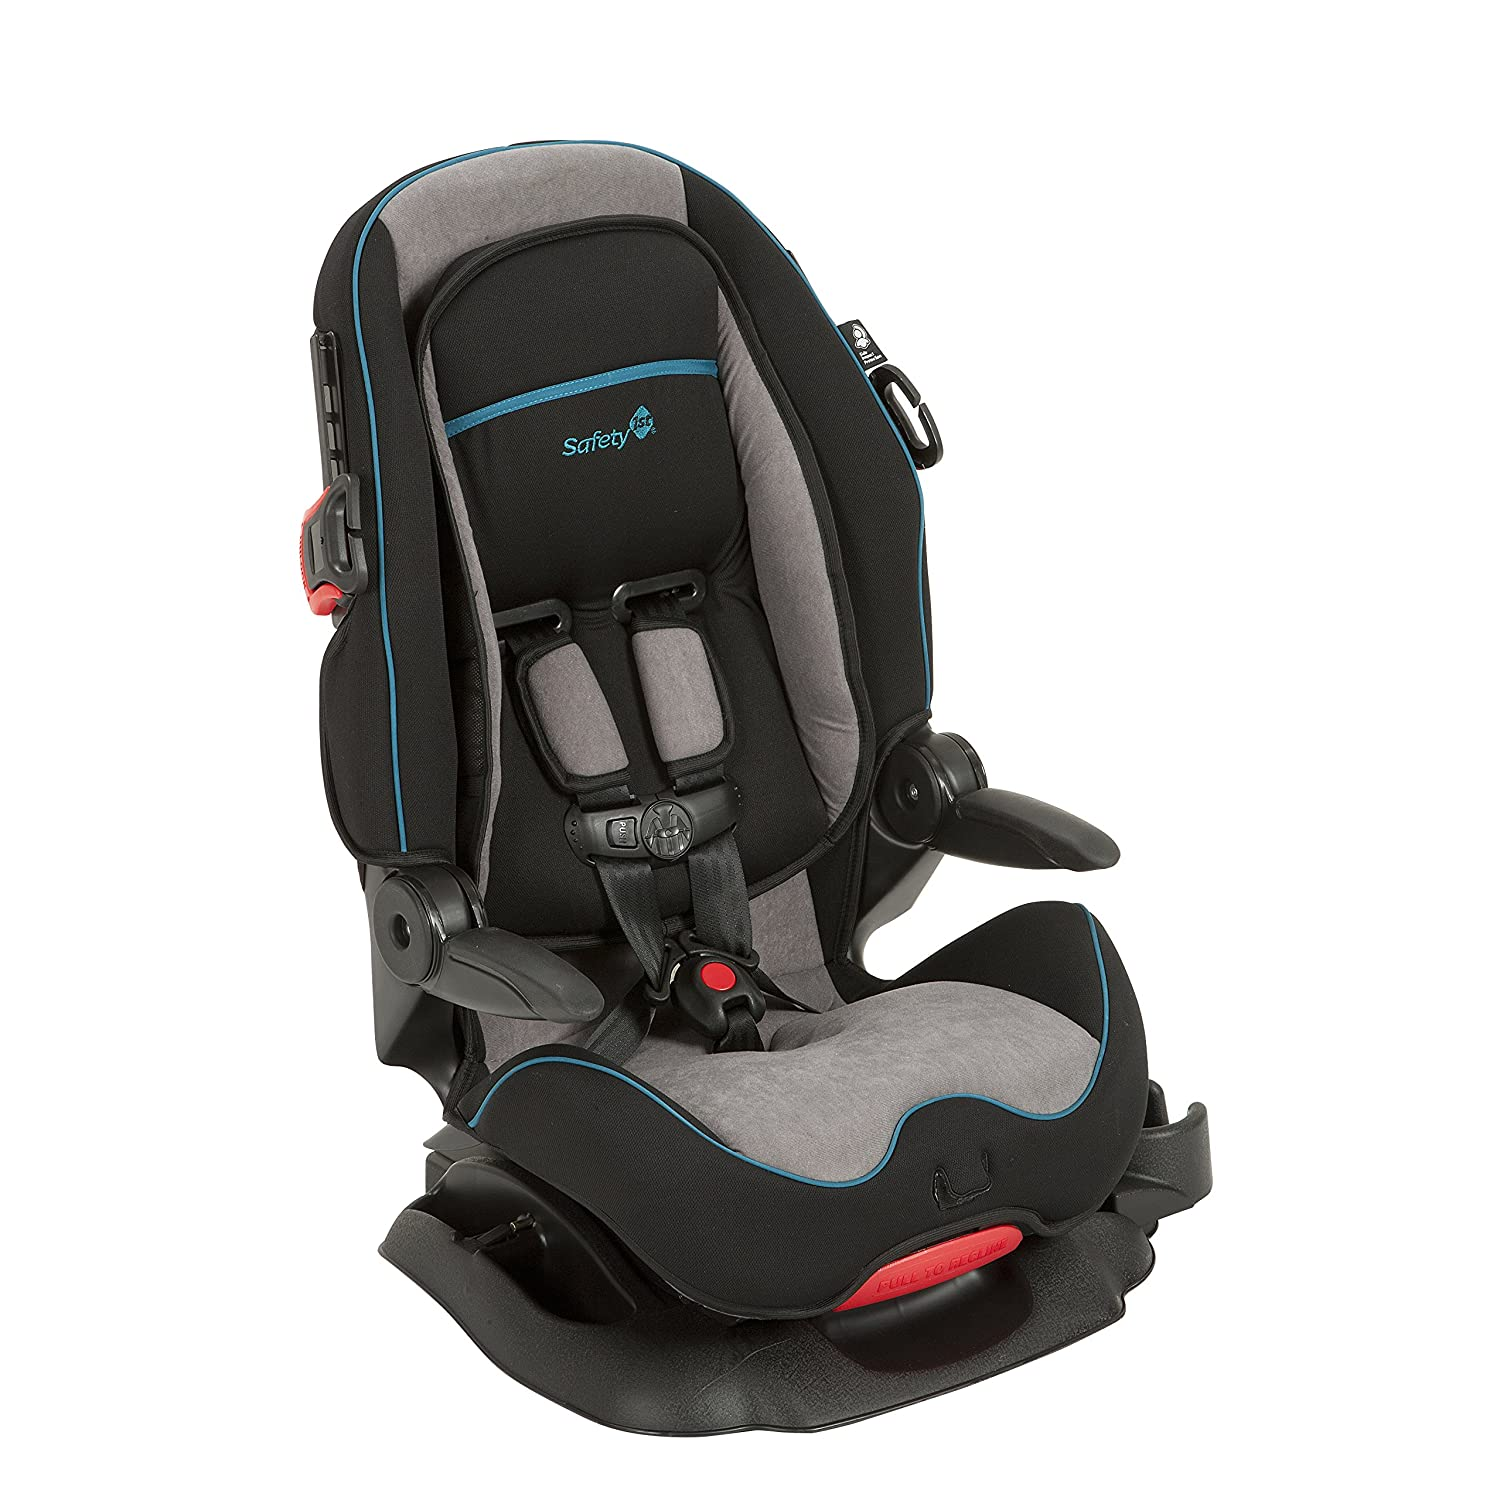 Car Seats : Online Shopping For Clothing, Shoes, Jewelry